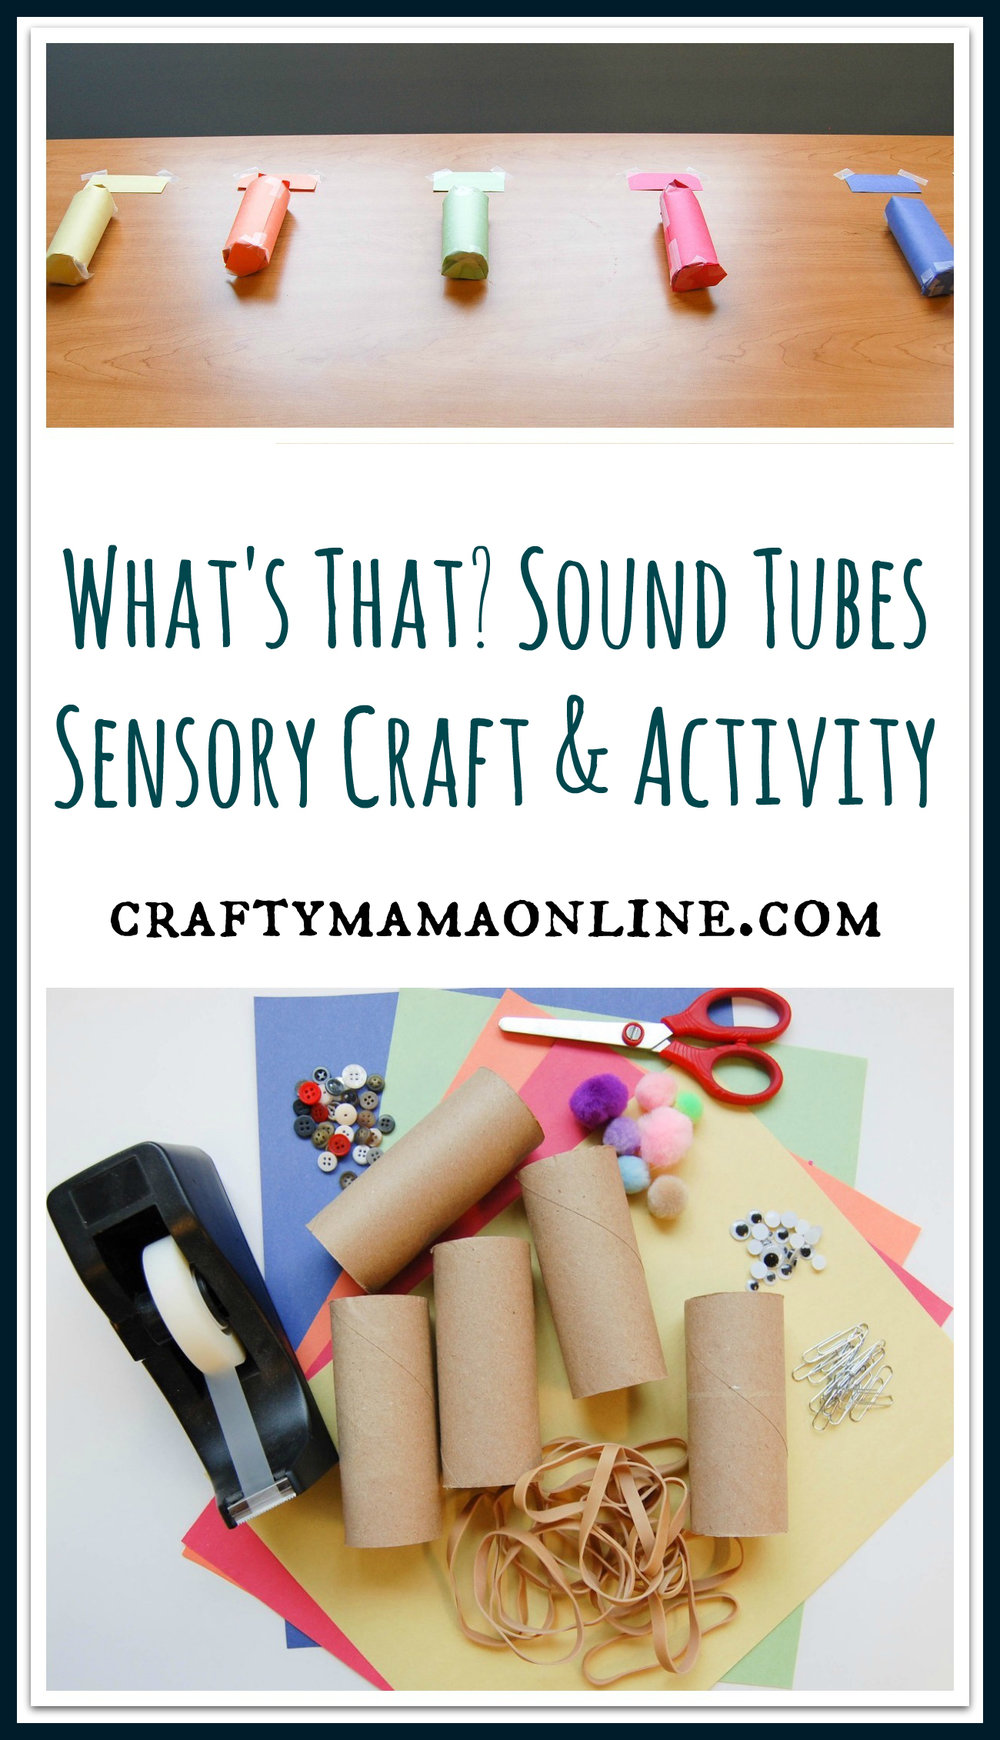 sound tubes sensory craft activity